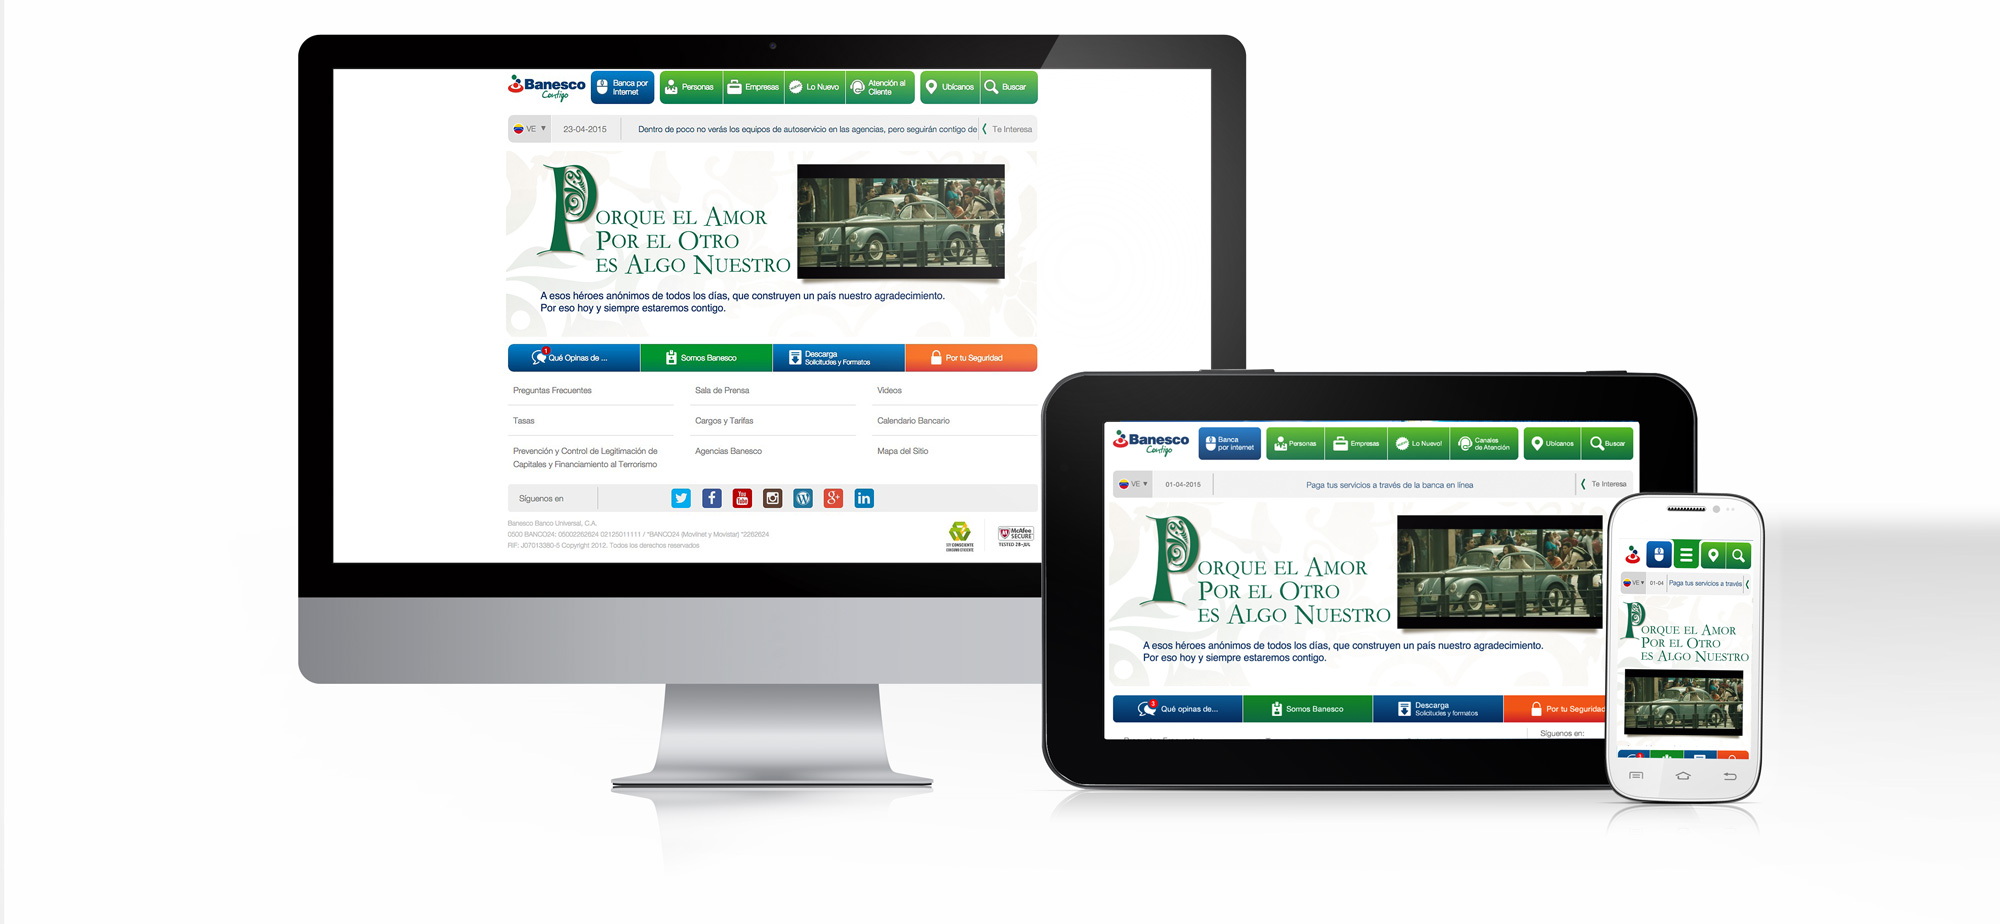 banesco salaprensa_site responsive desktop+cell+ipad